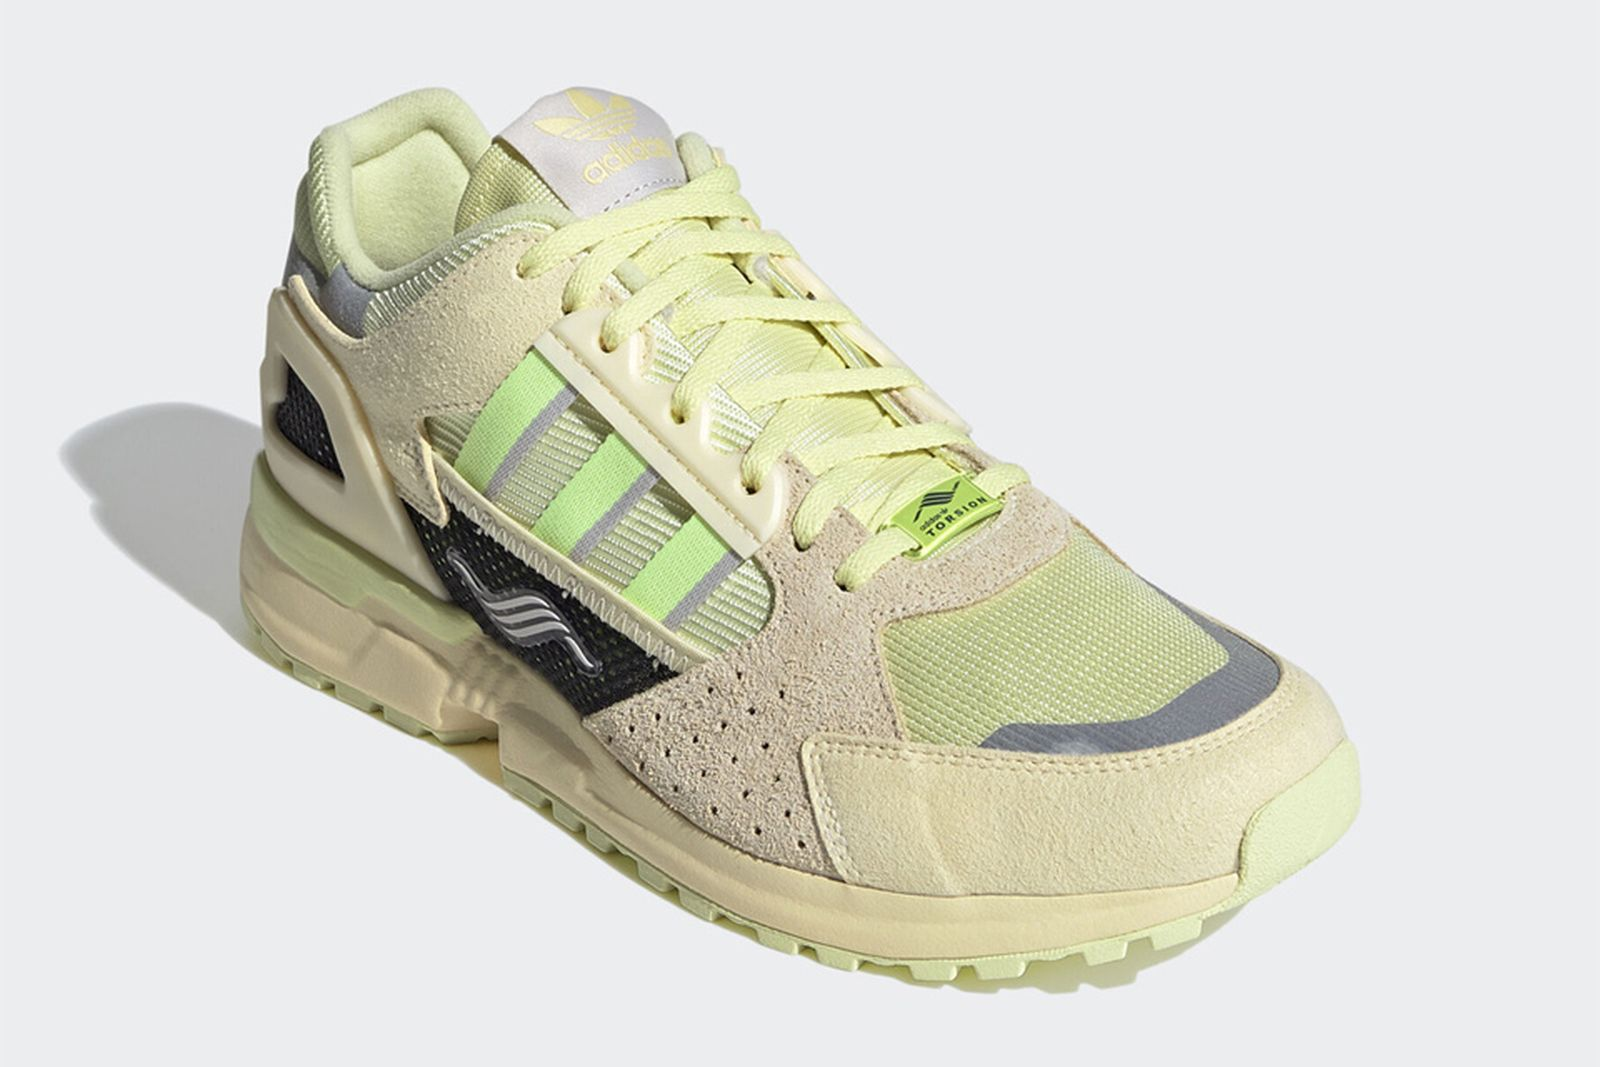 adidas-zx-10000-c-yellow-tint-release-date-price-04